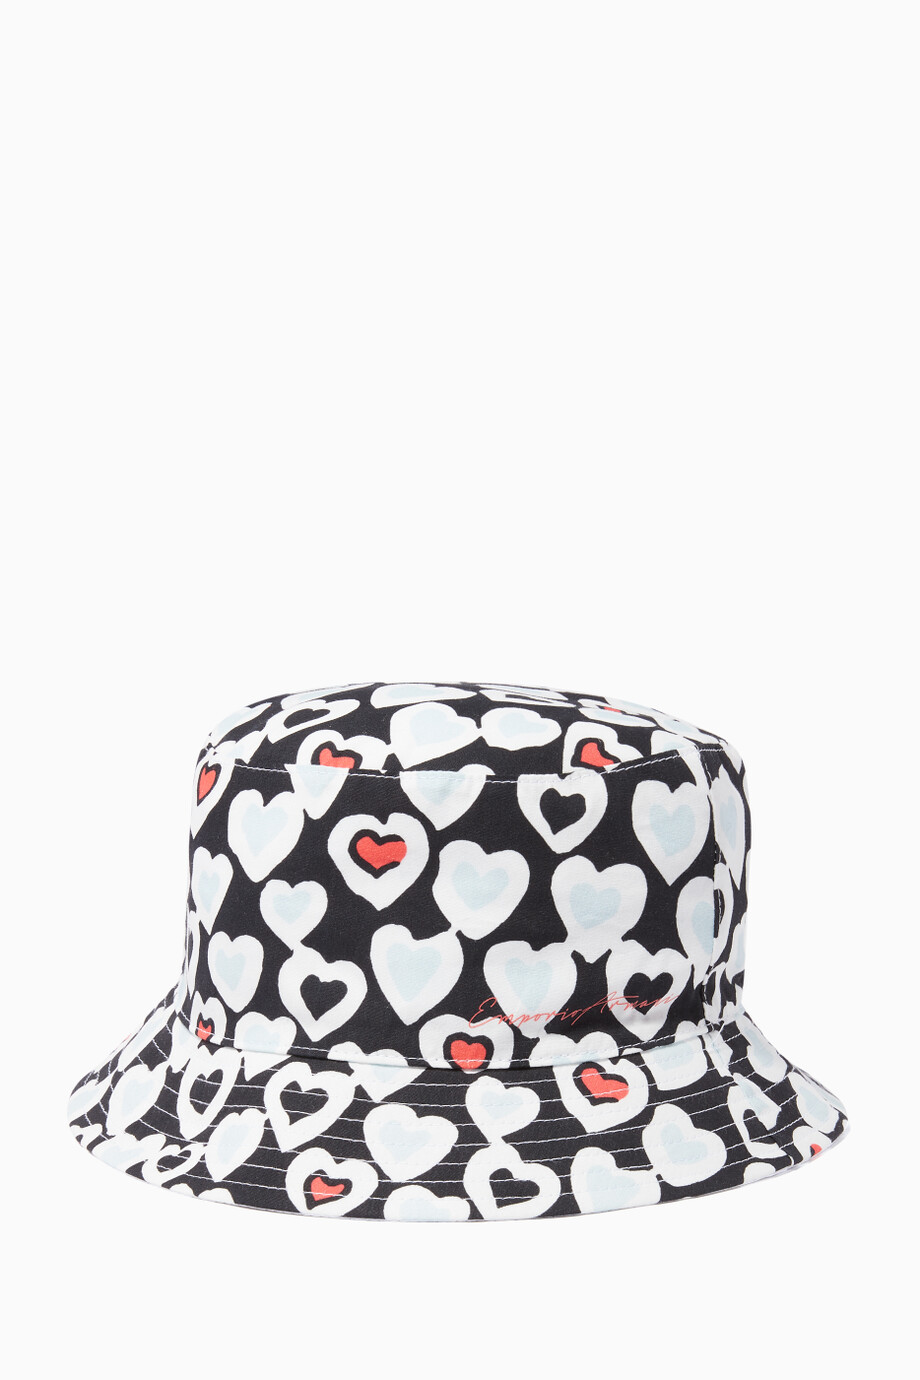 1ed7aa4c Shop Emporio Armani Black All-Over Hearts Fedora Hat for Kids ...